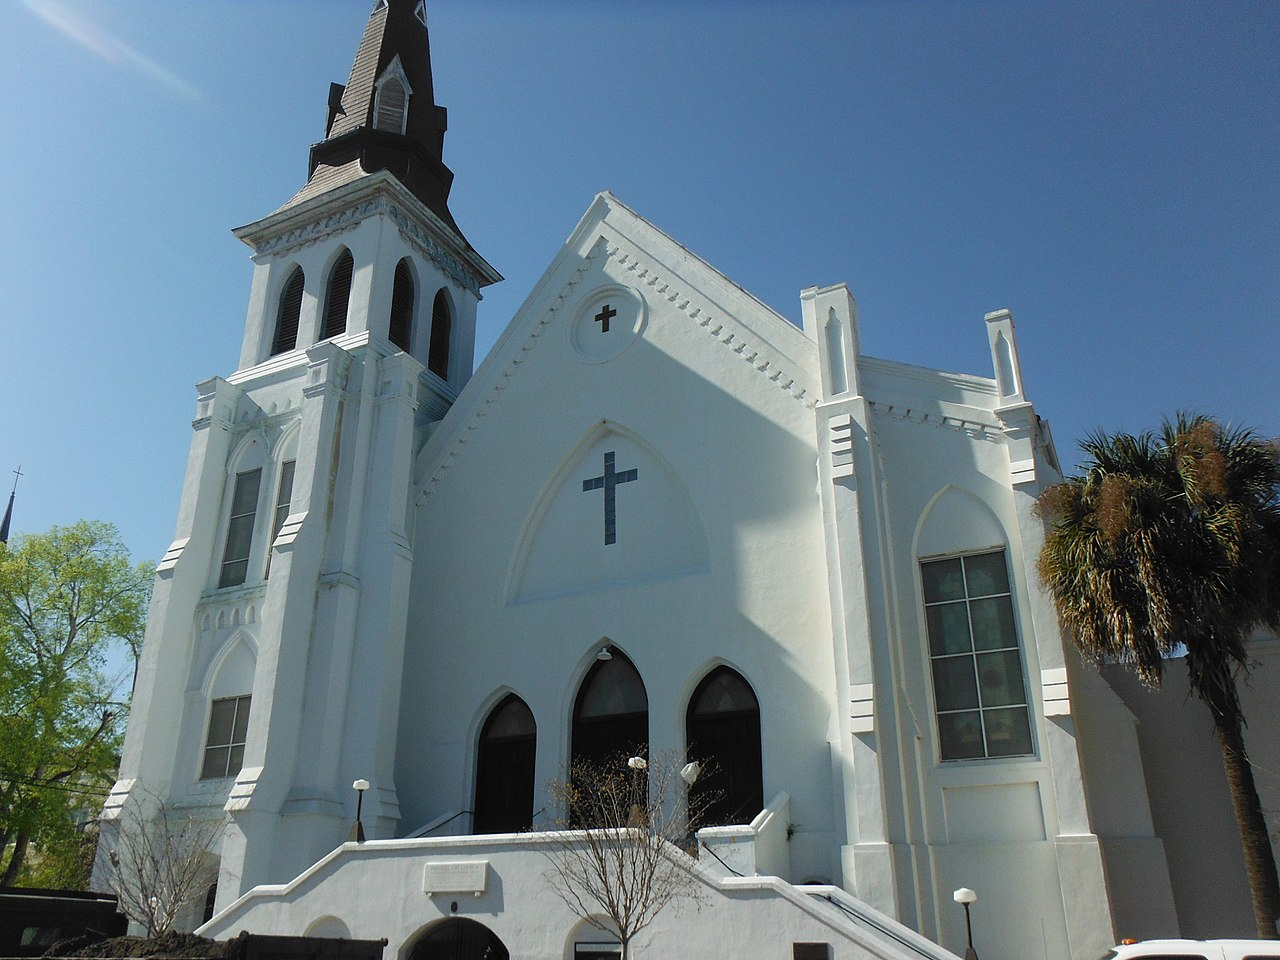 CCPL programs throughout June to honor Emanuel AME victims